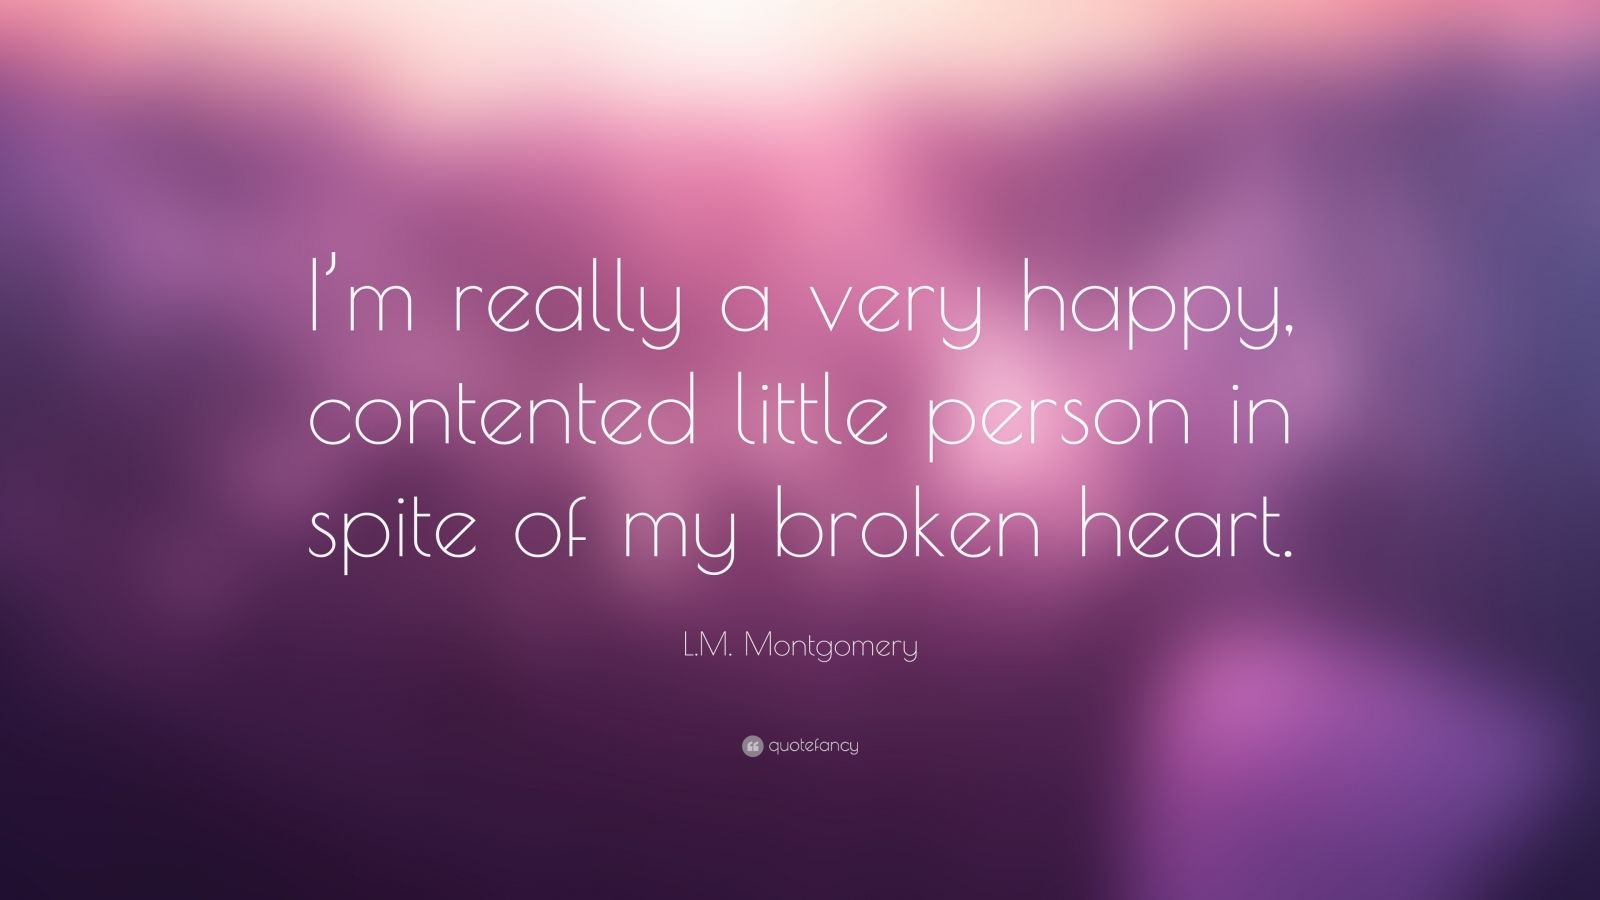 """L.M. Montgomery Quote: """"I'm really a very happy, contented little person in spite of my broken heart."""""""